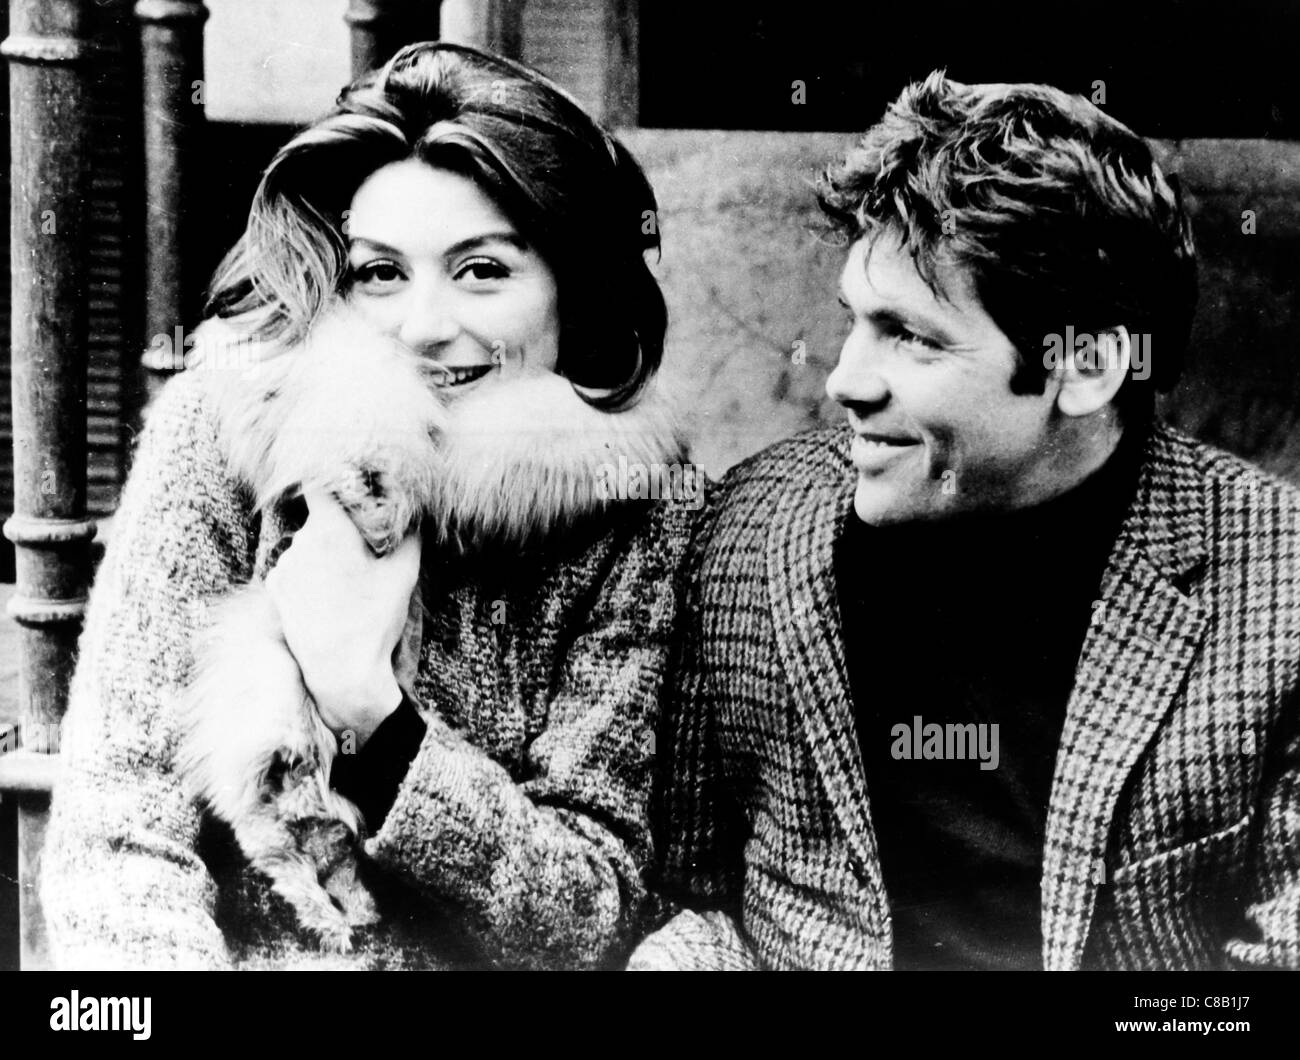 A Man and a Woman,Anouk Aimée,Pierre Barouh,1966 - Stock Image